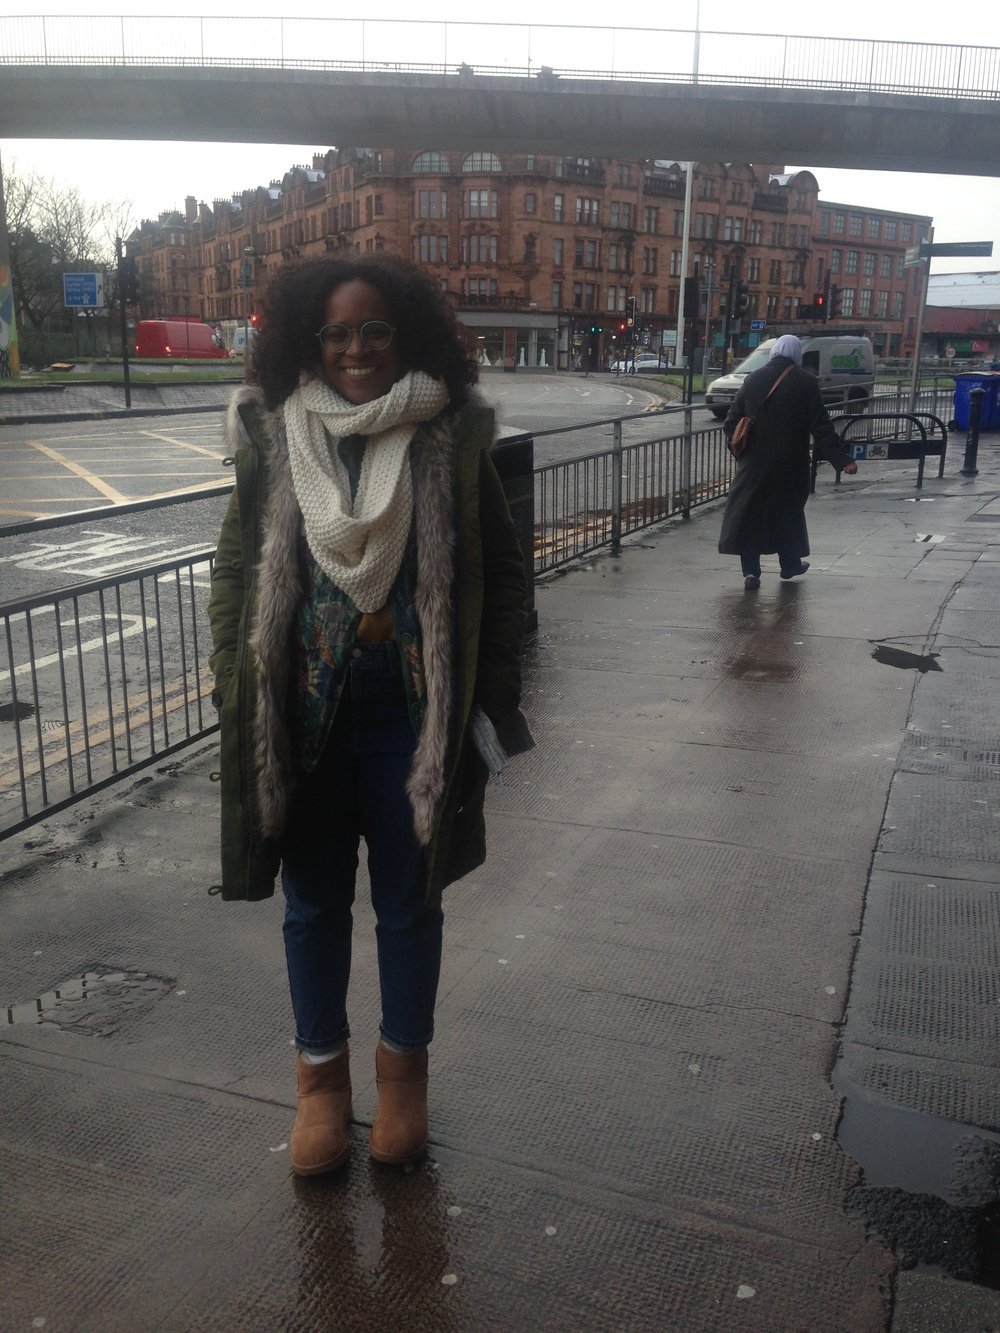 Me, all bundled up in Glasgow. (Photo by: Nicole Smythe-Johnson)